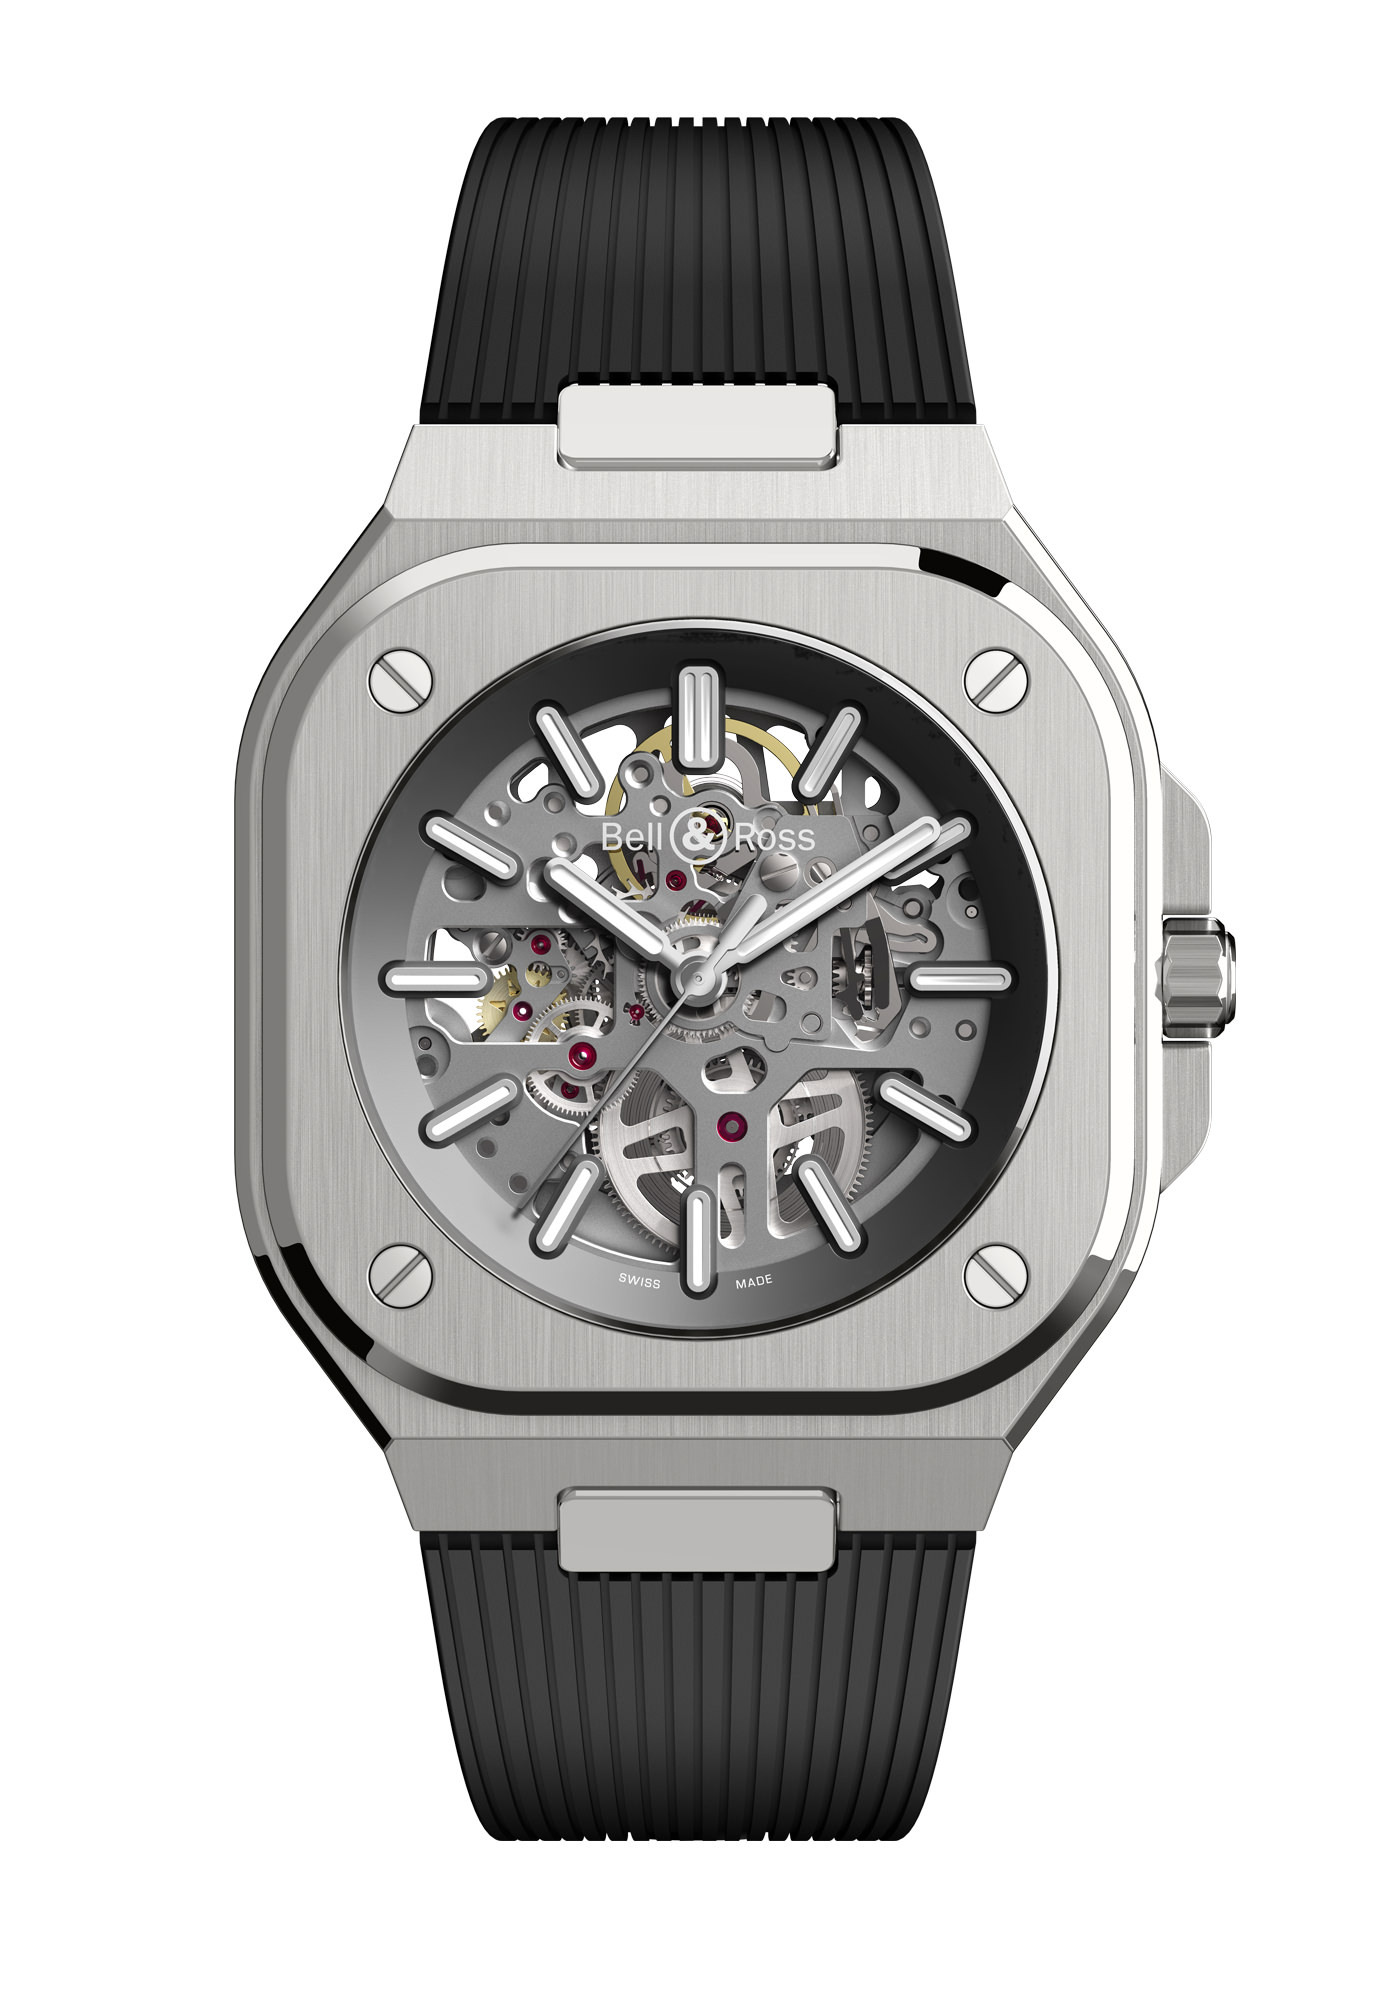 Montre Bell & Ross Nouvelle Collection BR05 Skeleton Caoutchouc